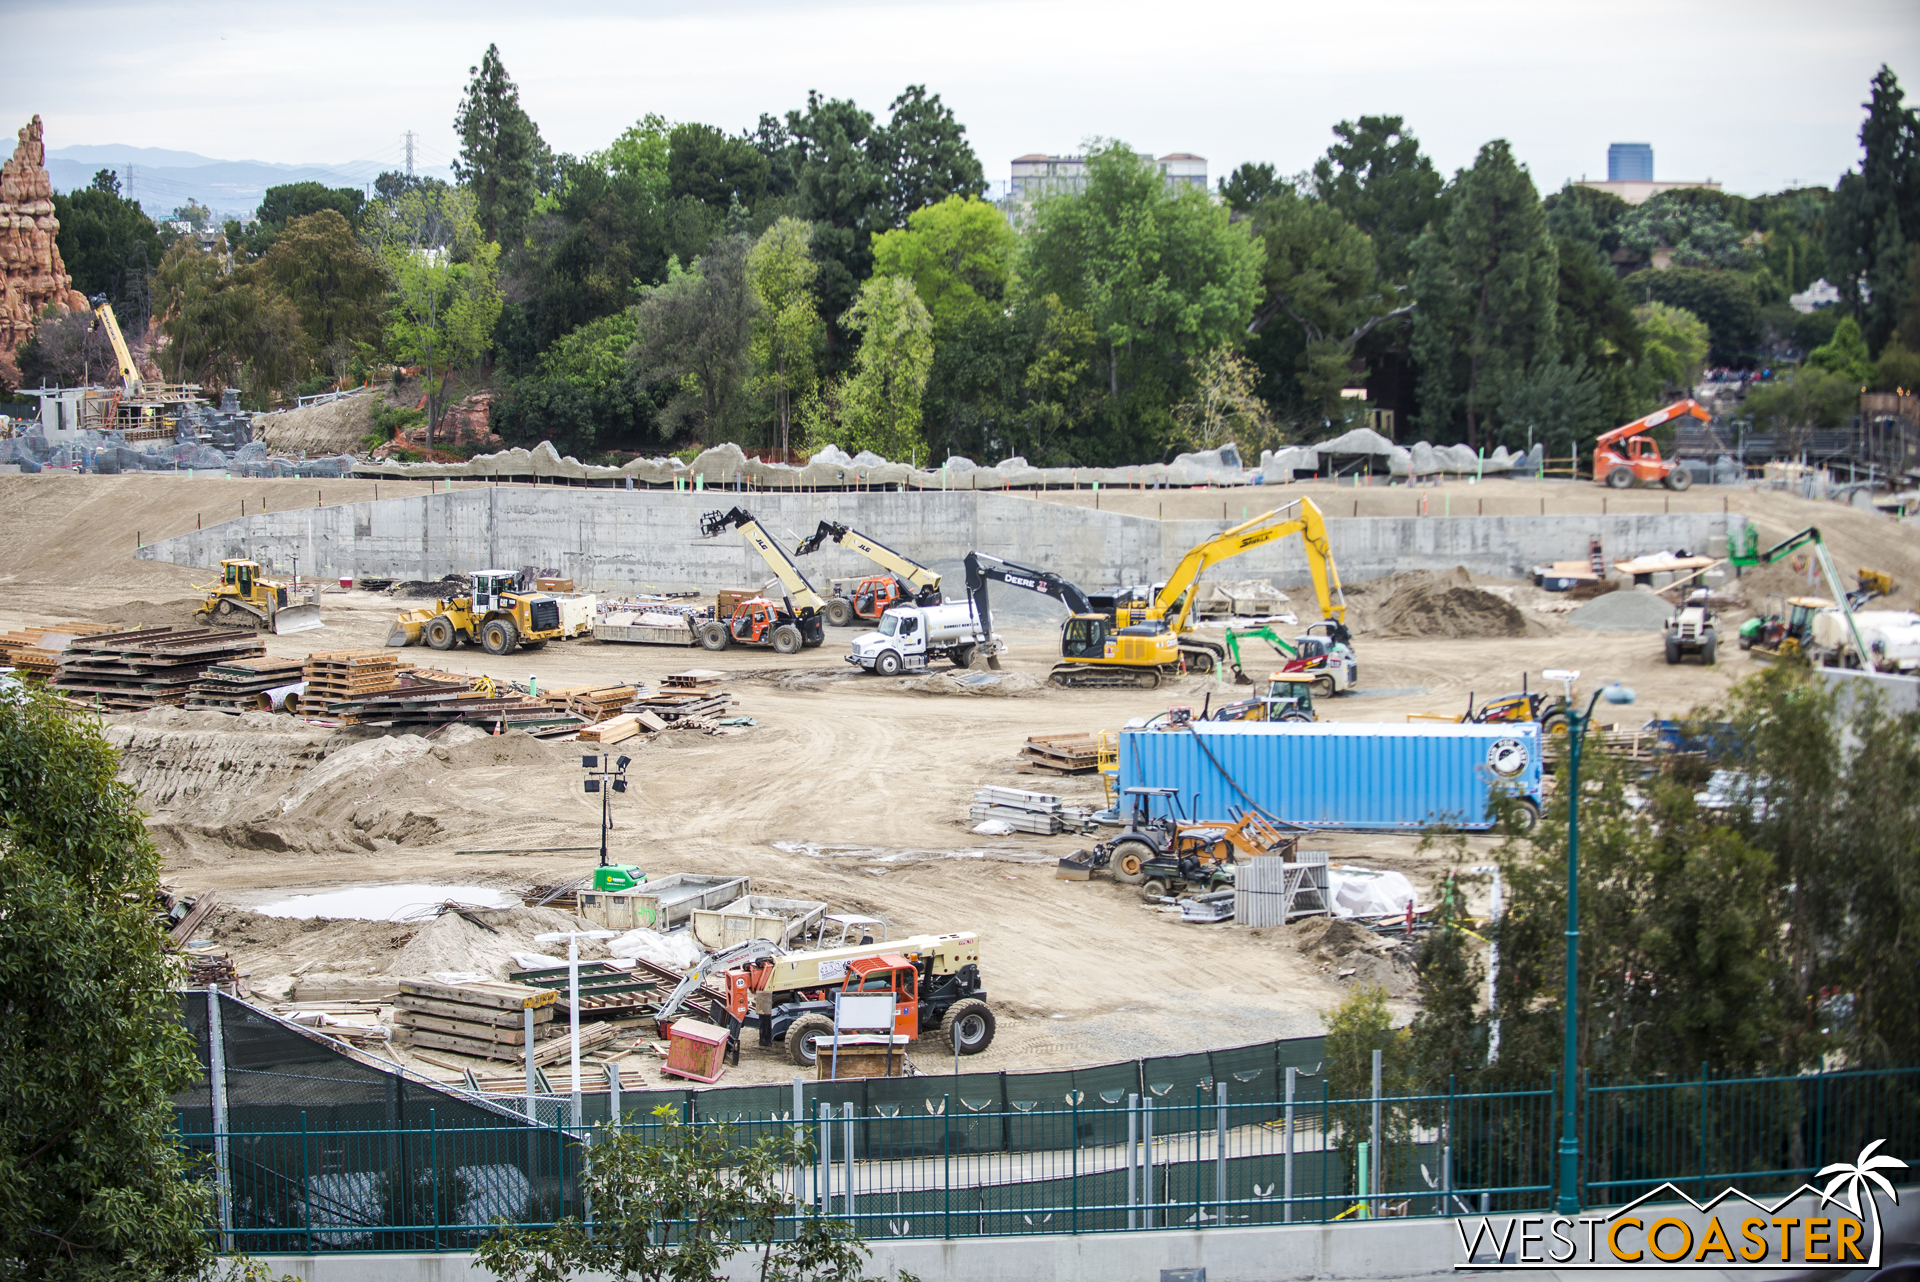 And now, to pan along the back end (front for the park, back from this angle) of the site.